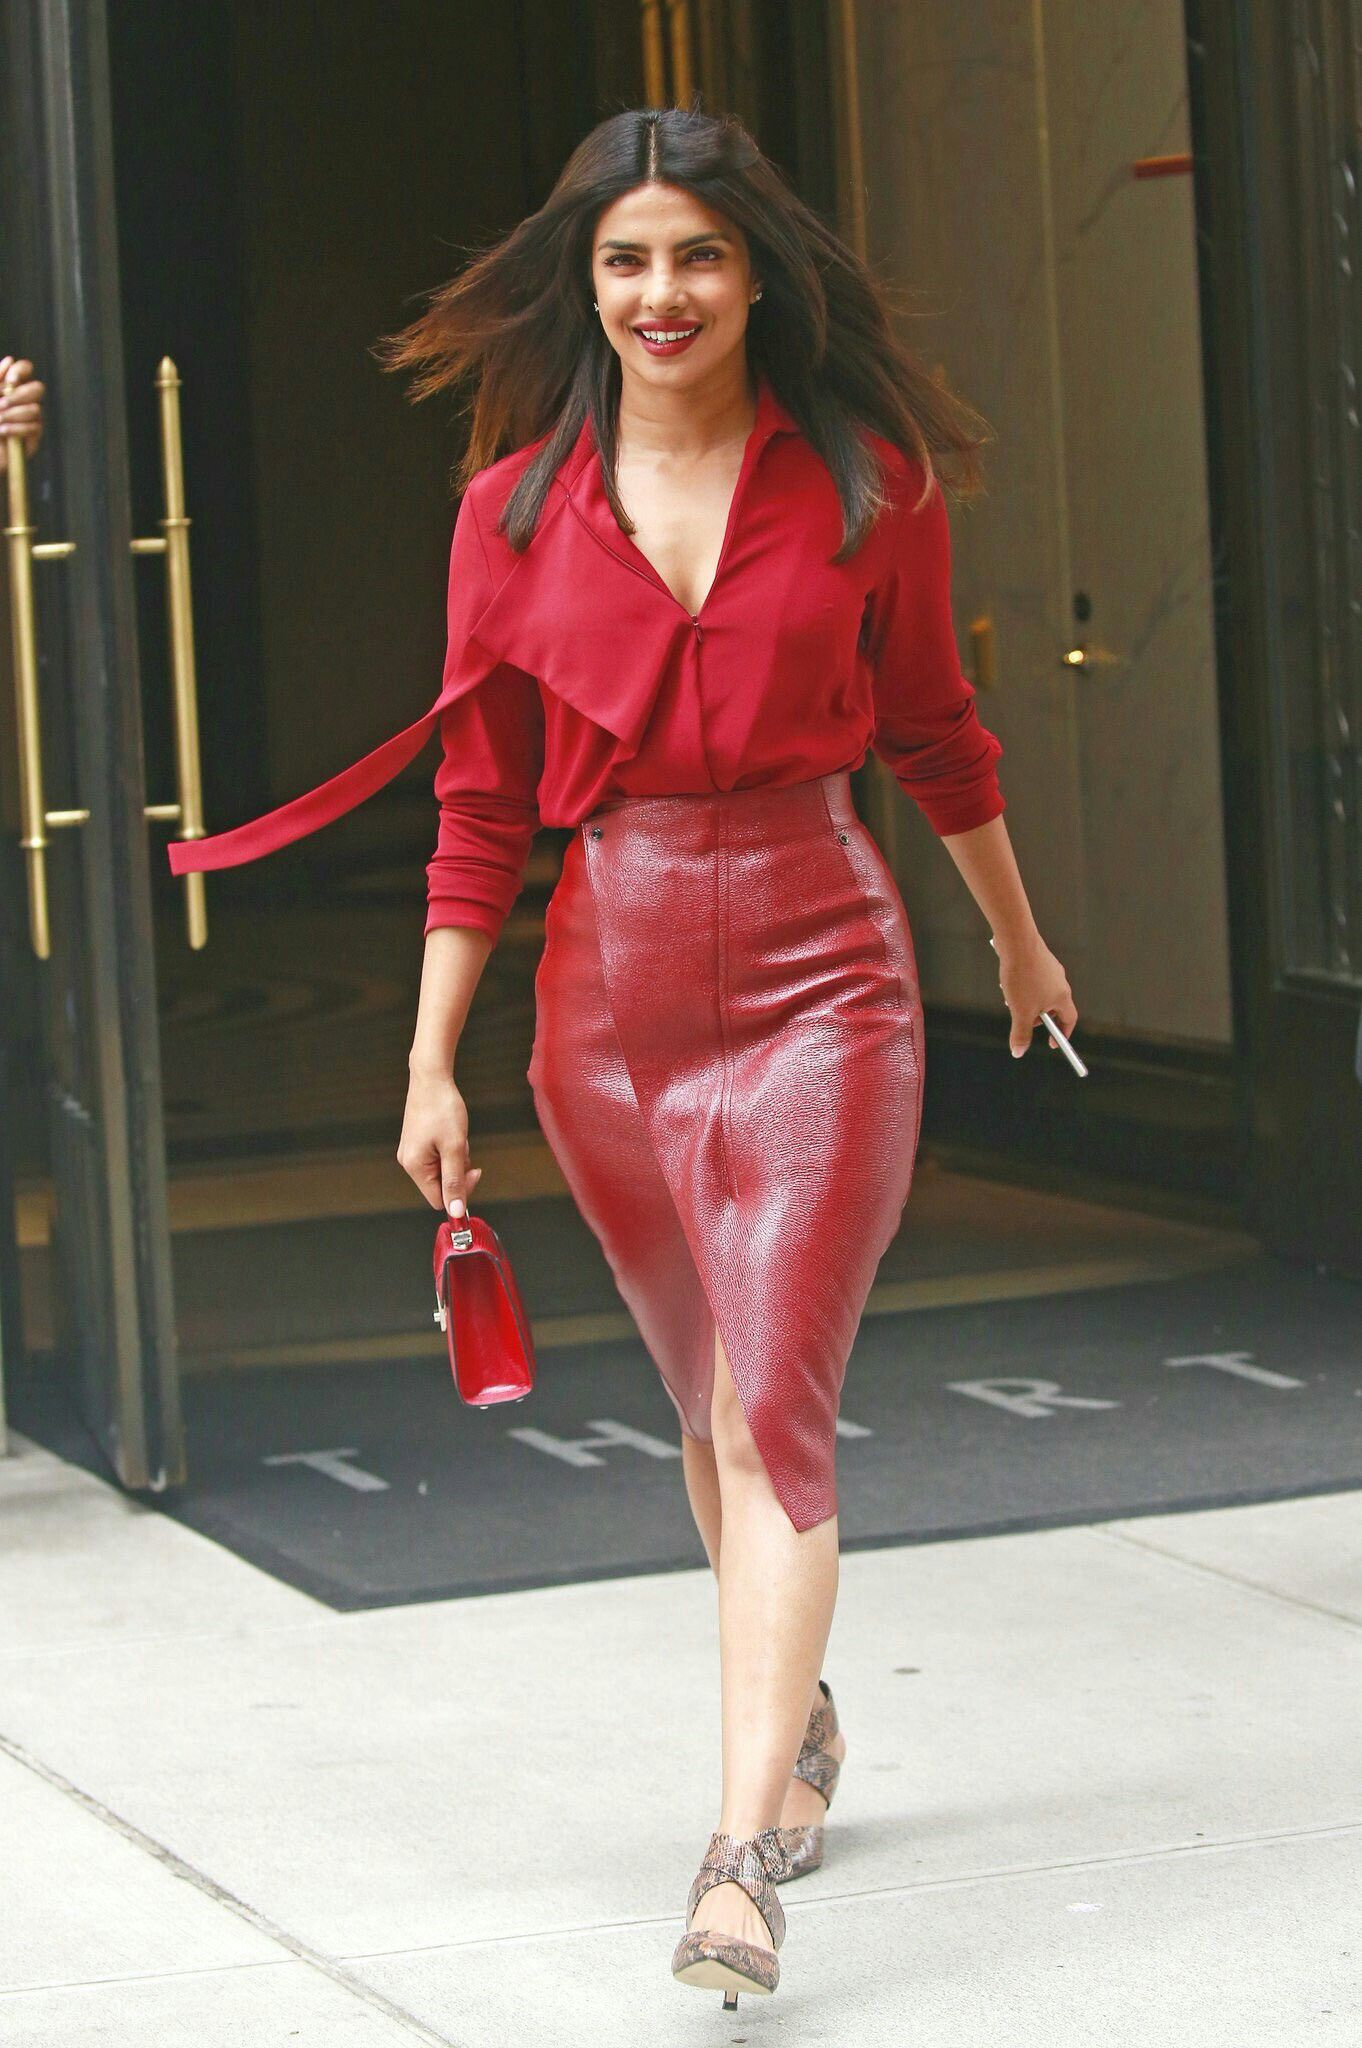 Pee cee | Bollywood fashion, Red leather skirt, Fashion